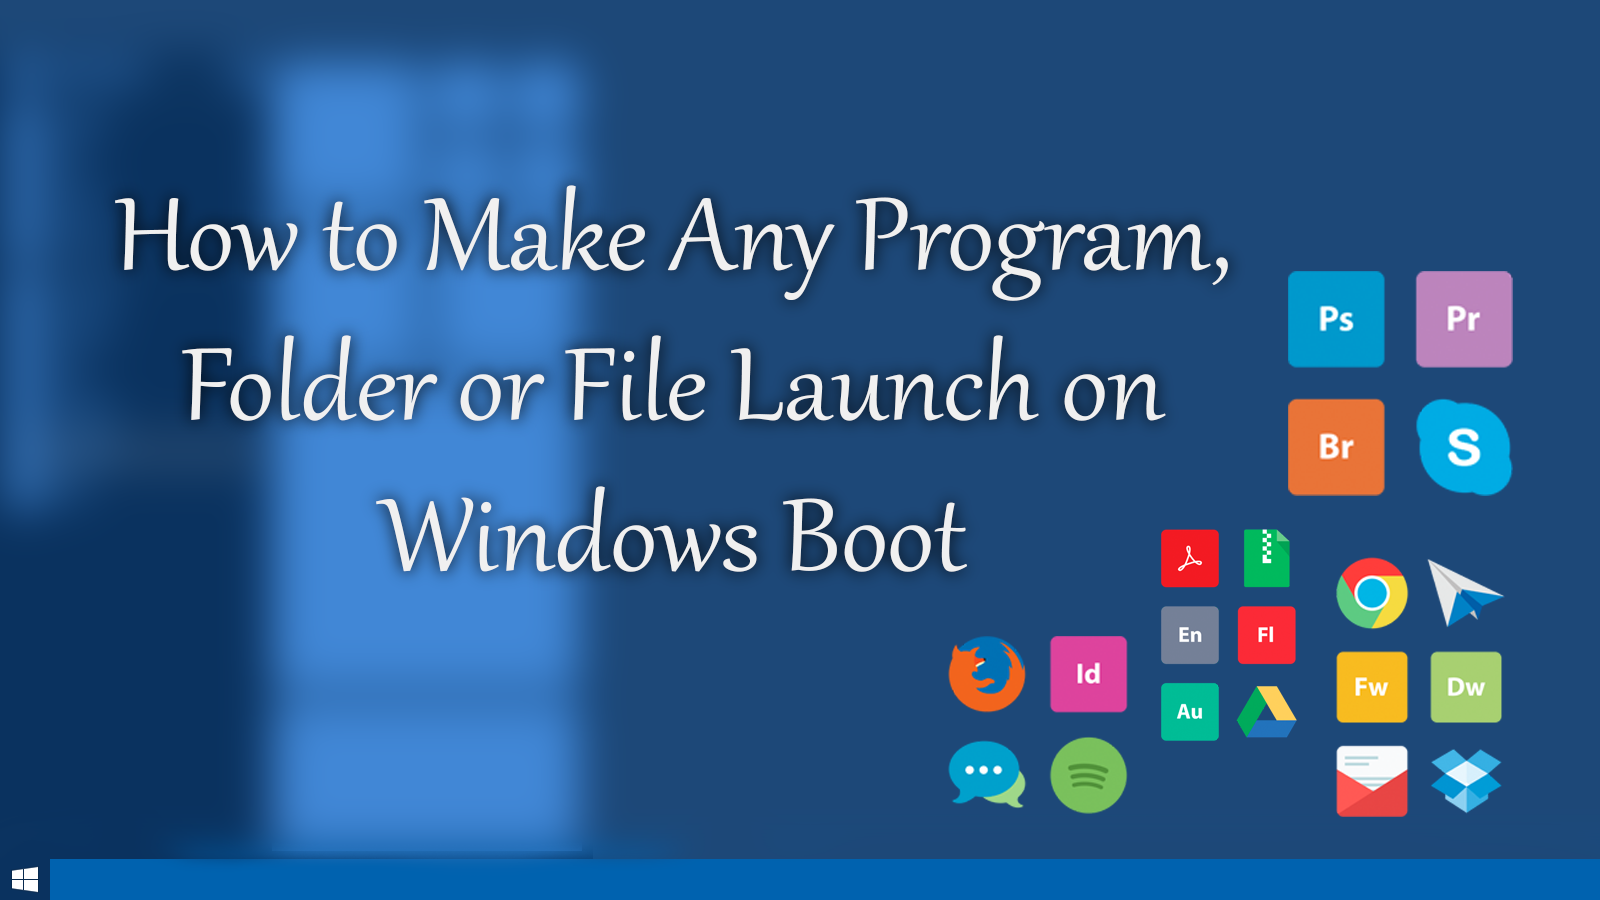 How to Make Any Program, Folder or File Launch on Windows